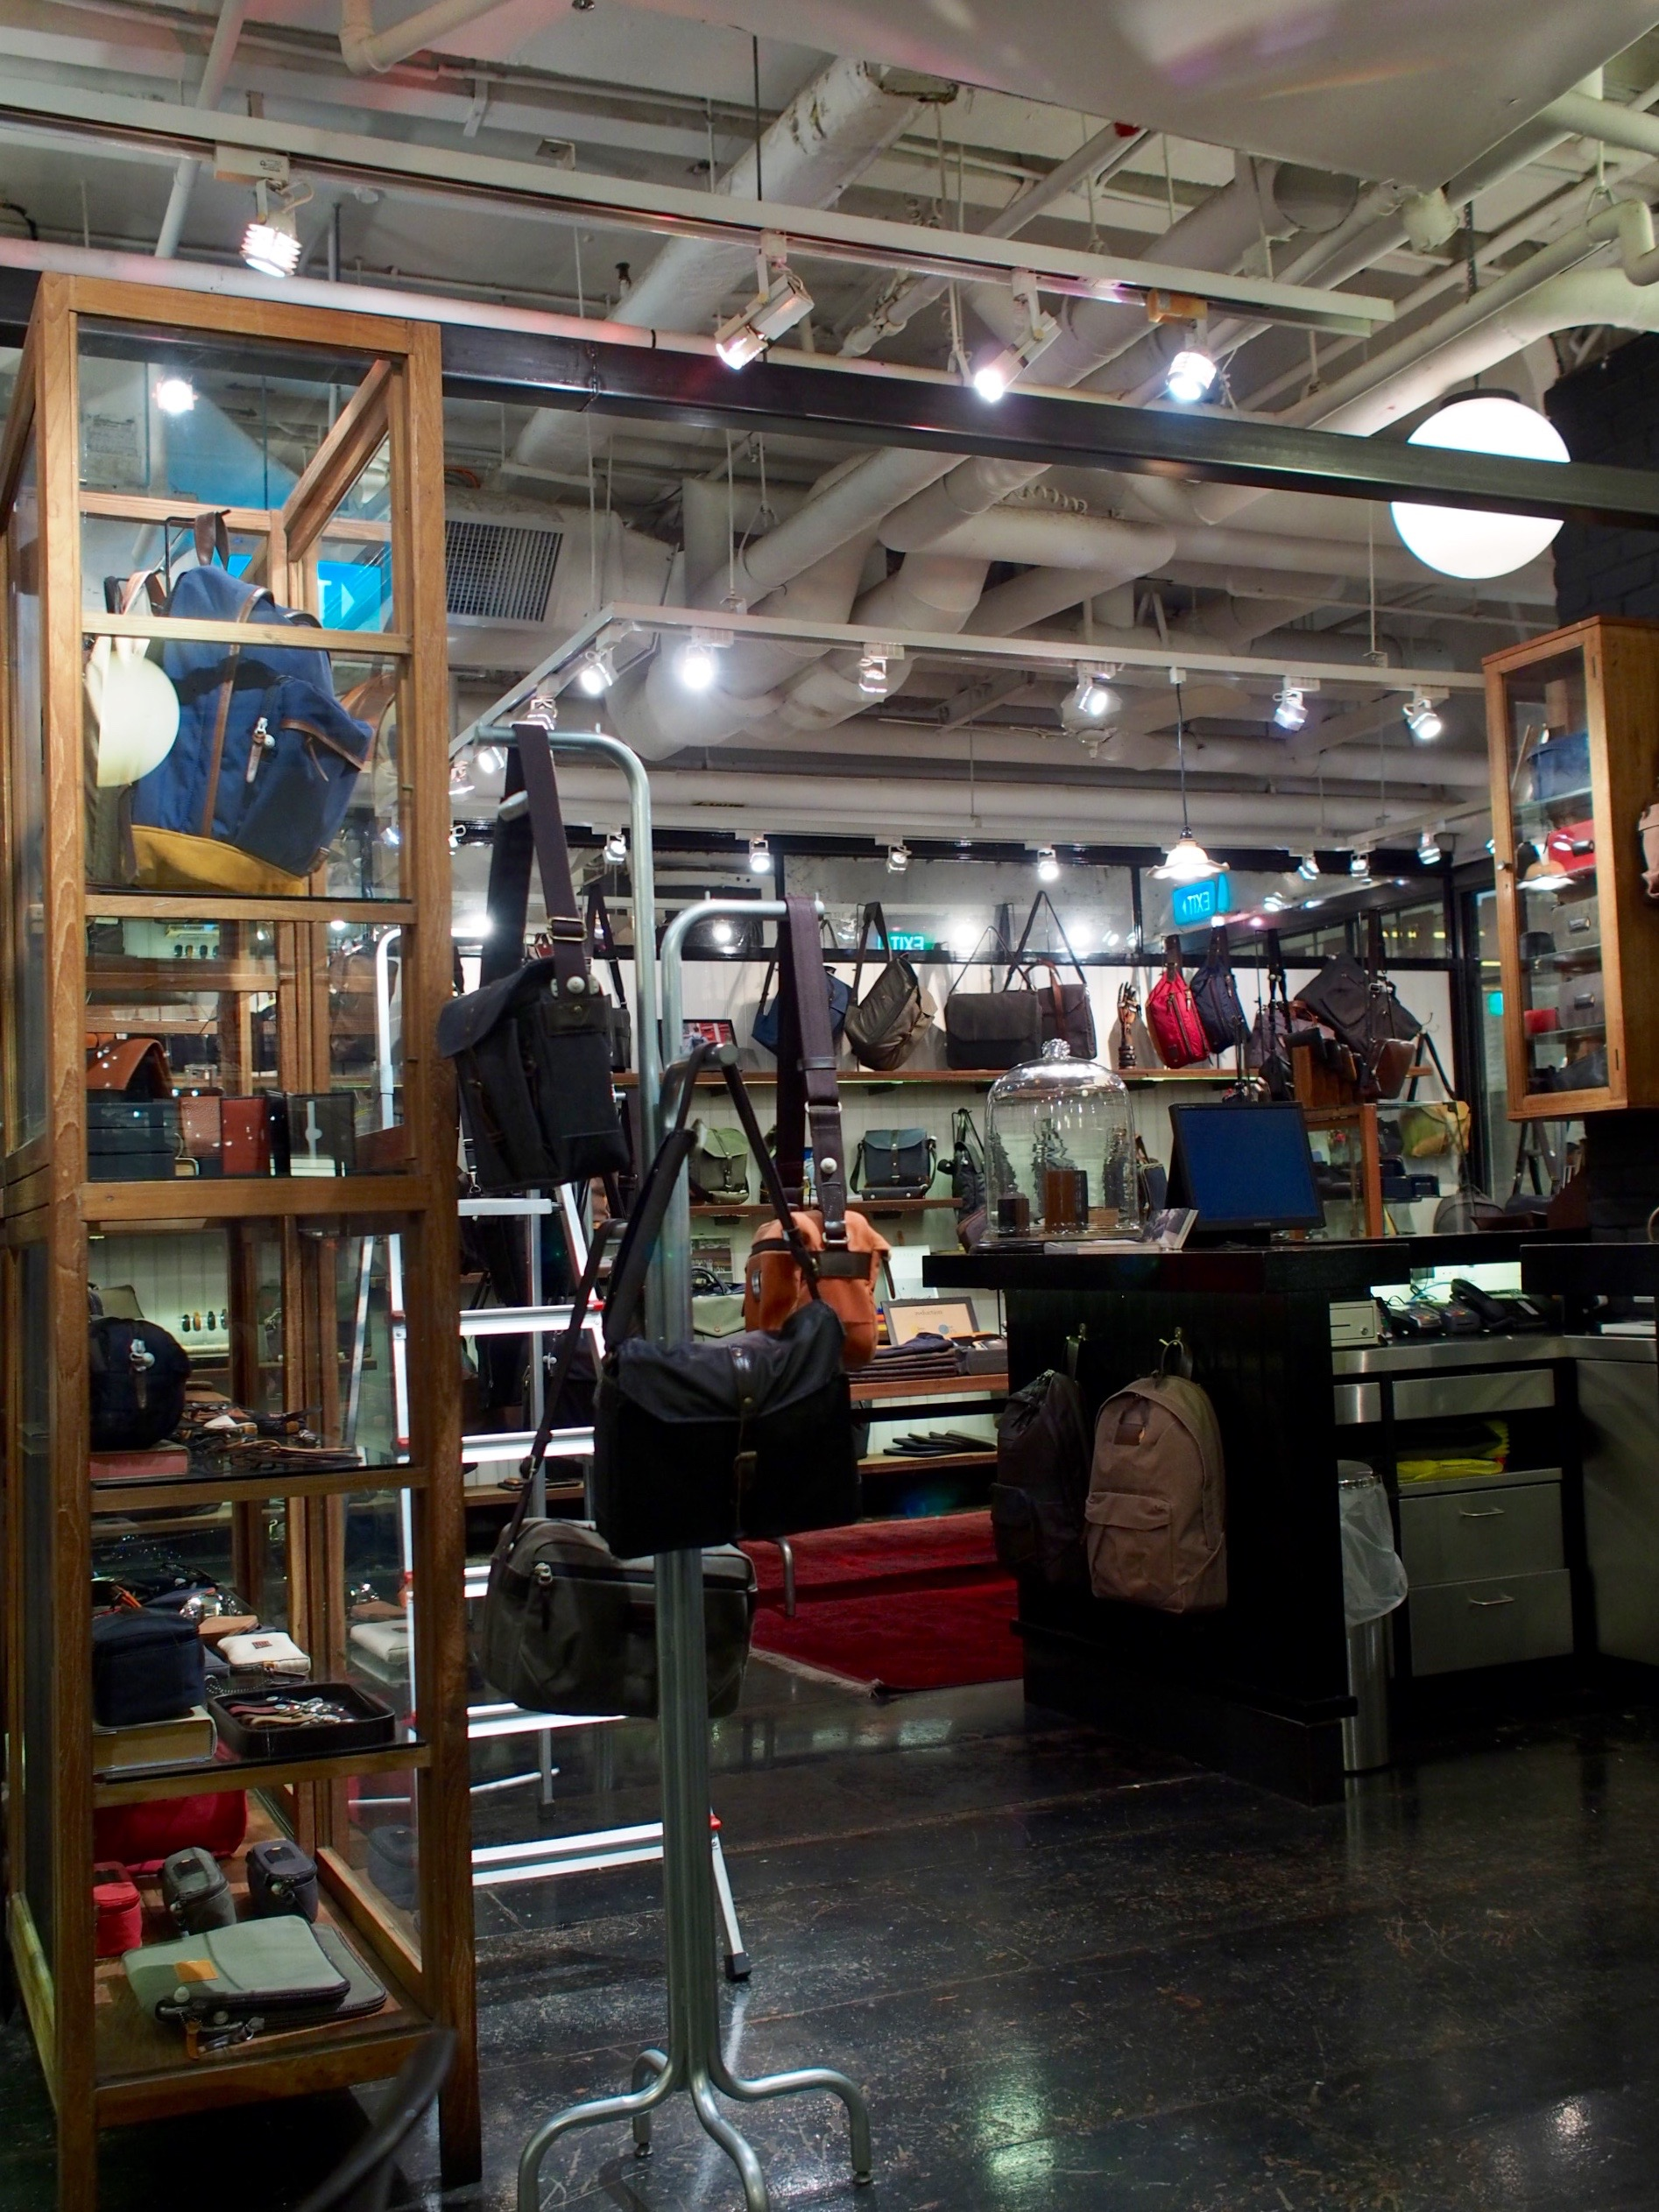 Paragon clothing store